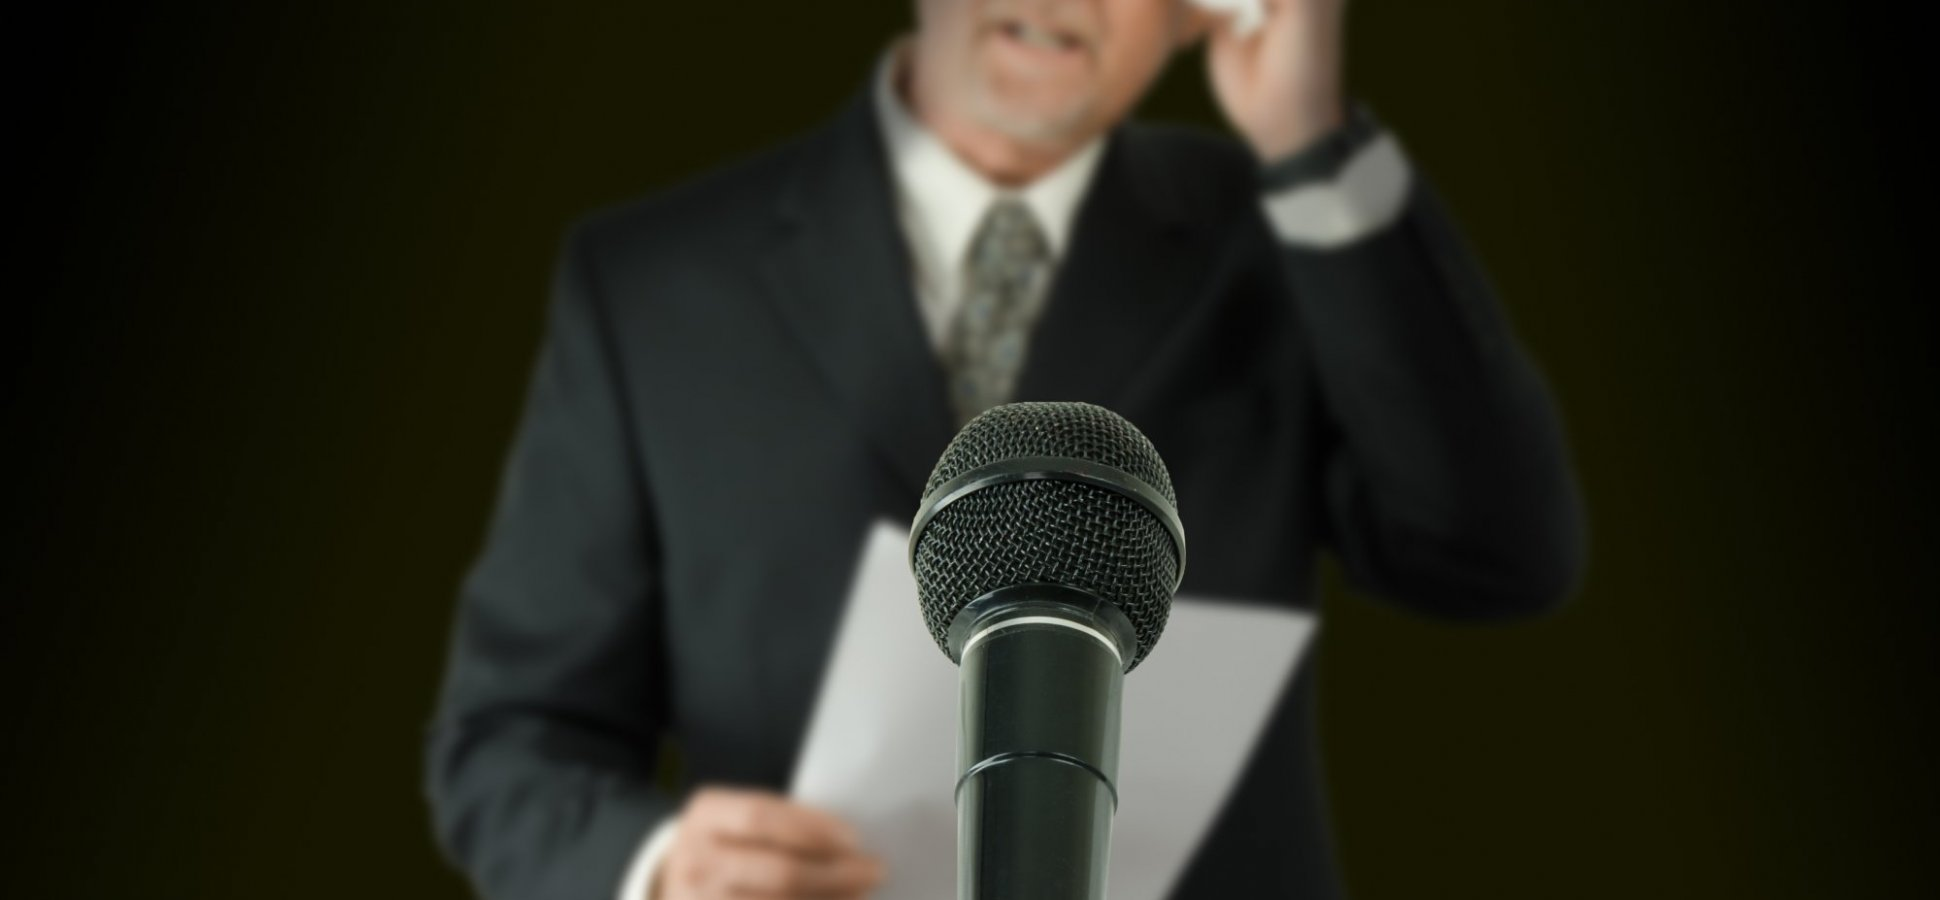 4 Common Mistakes Public Speakers Make and How to Correct Them